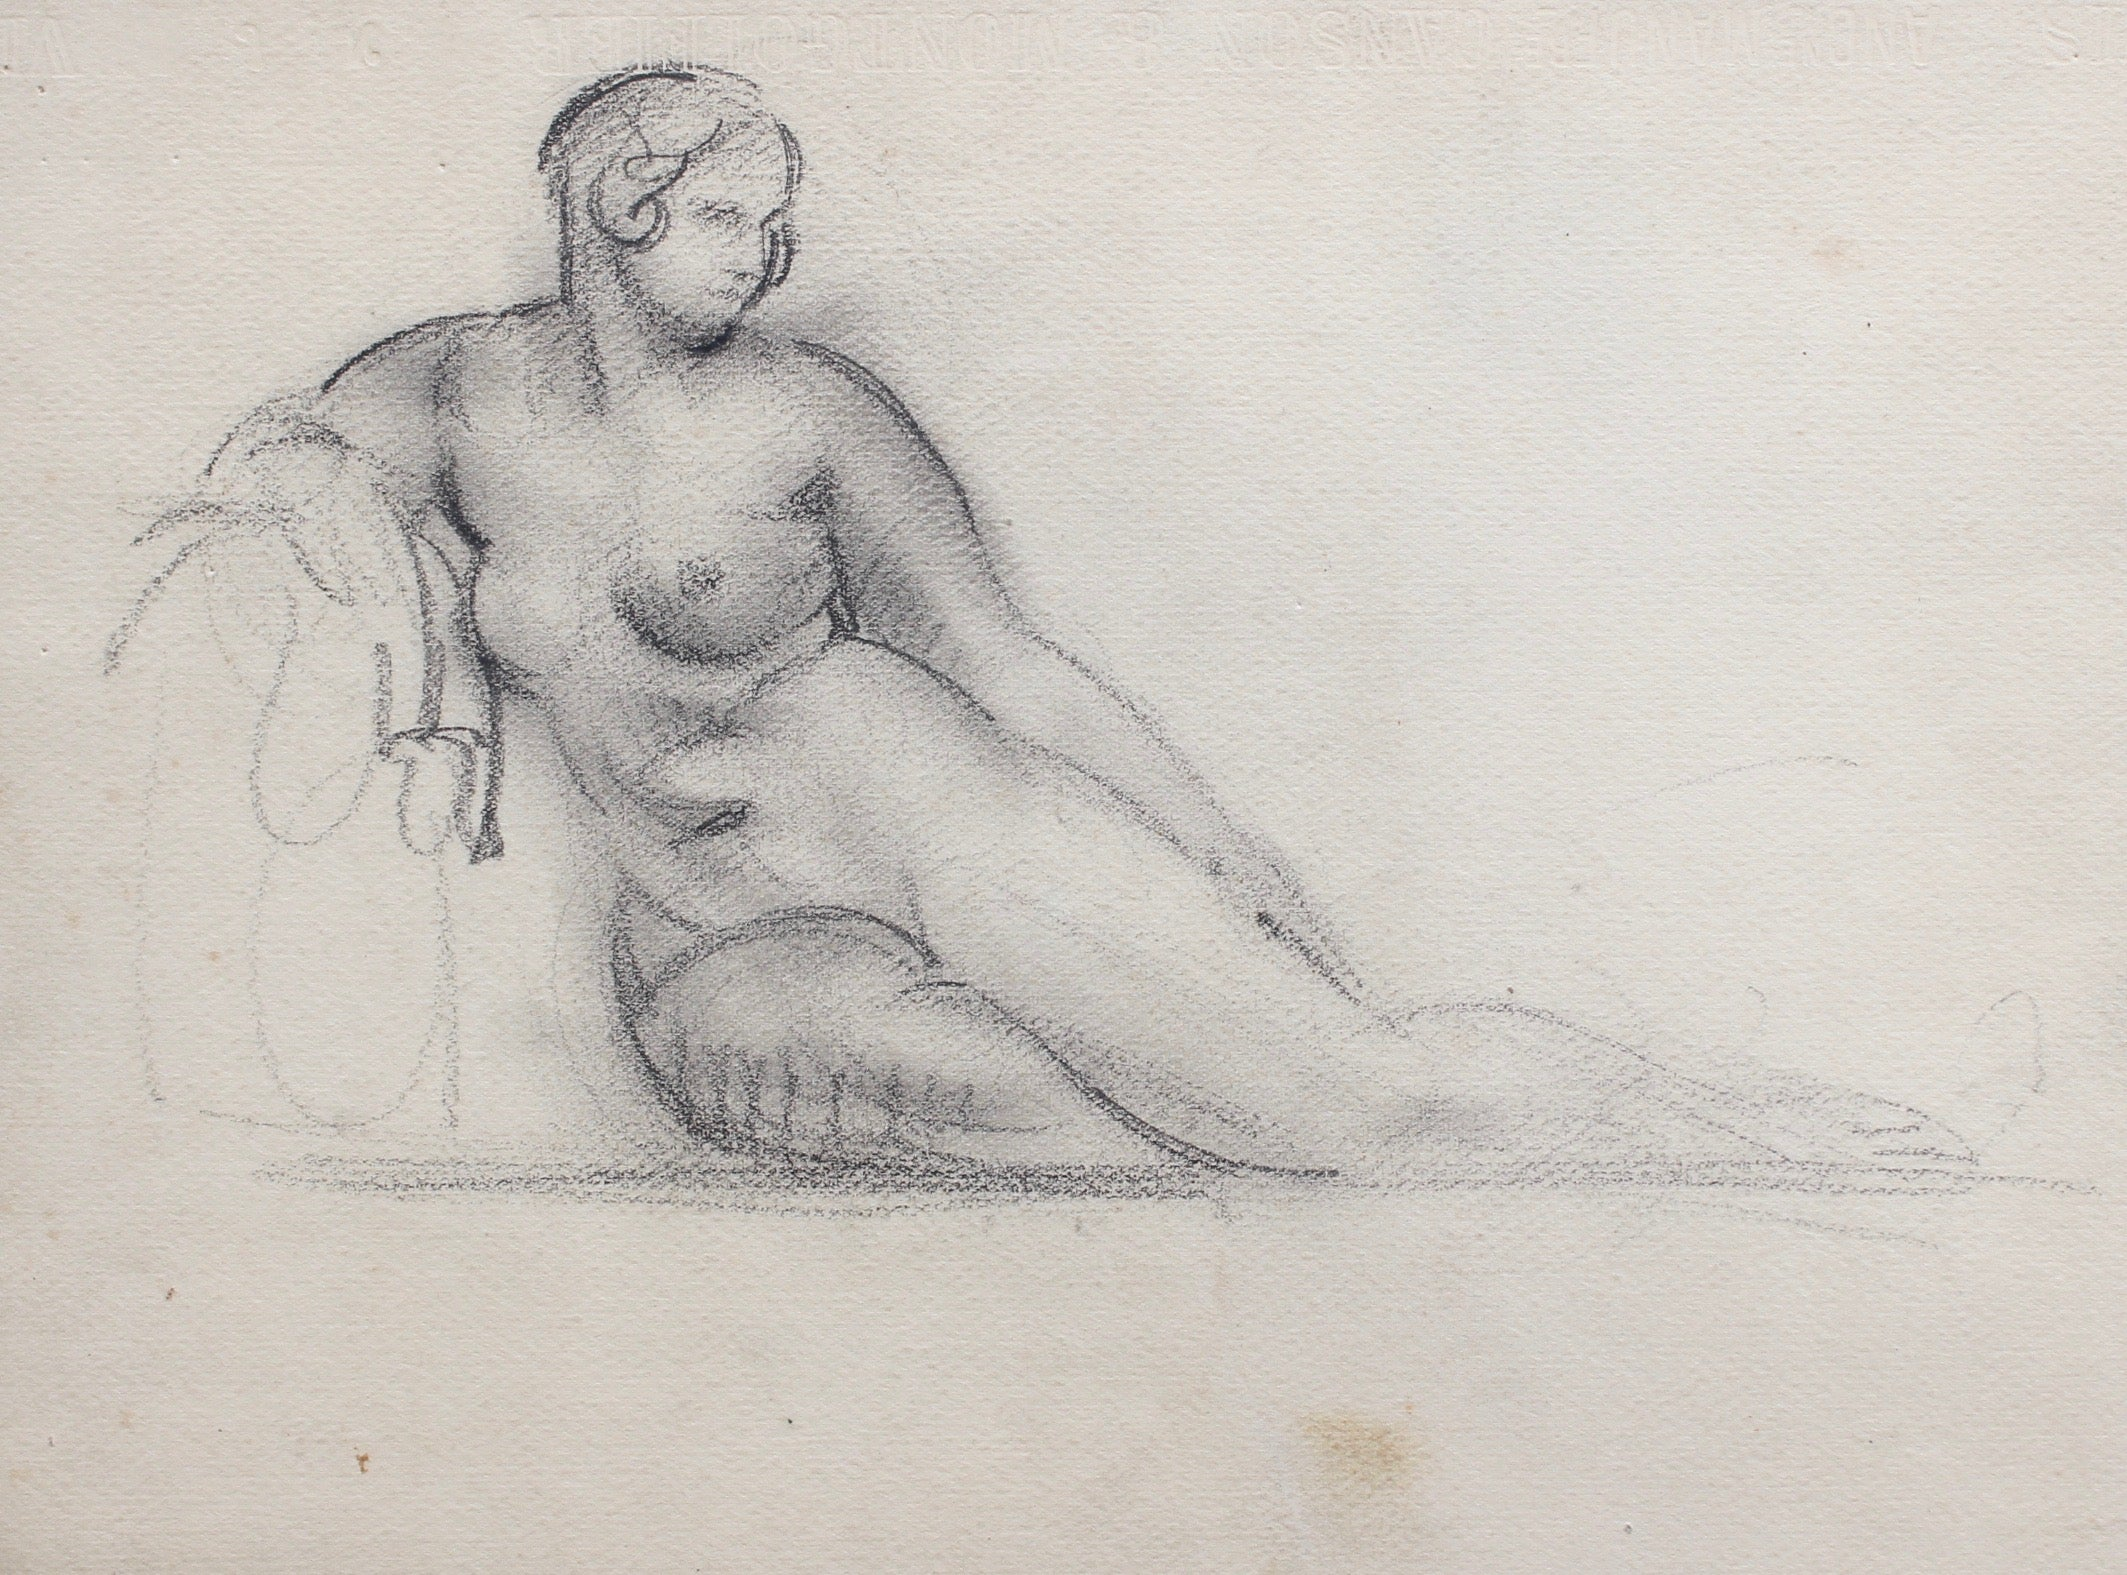 'Portrait of Reposing Nude' by Guillaume Dulac (circa 1920s)